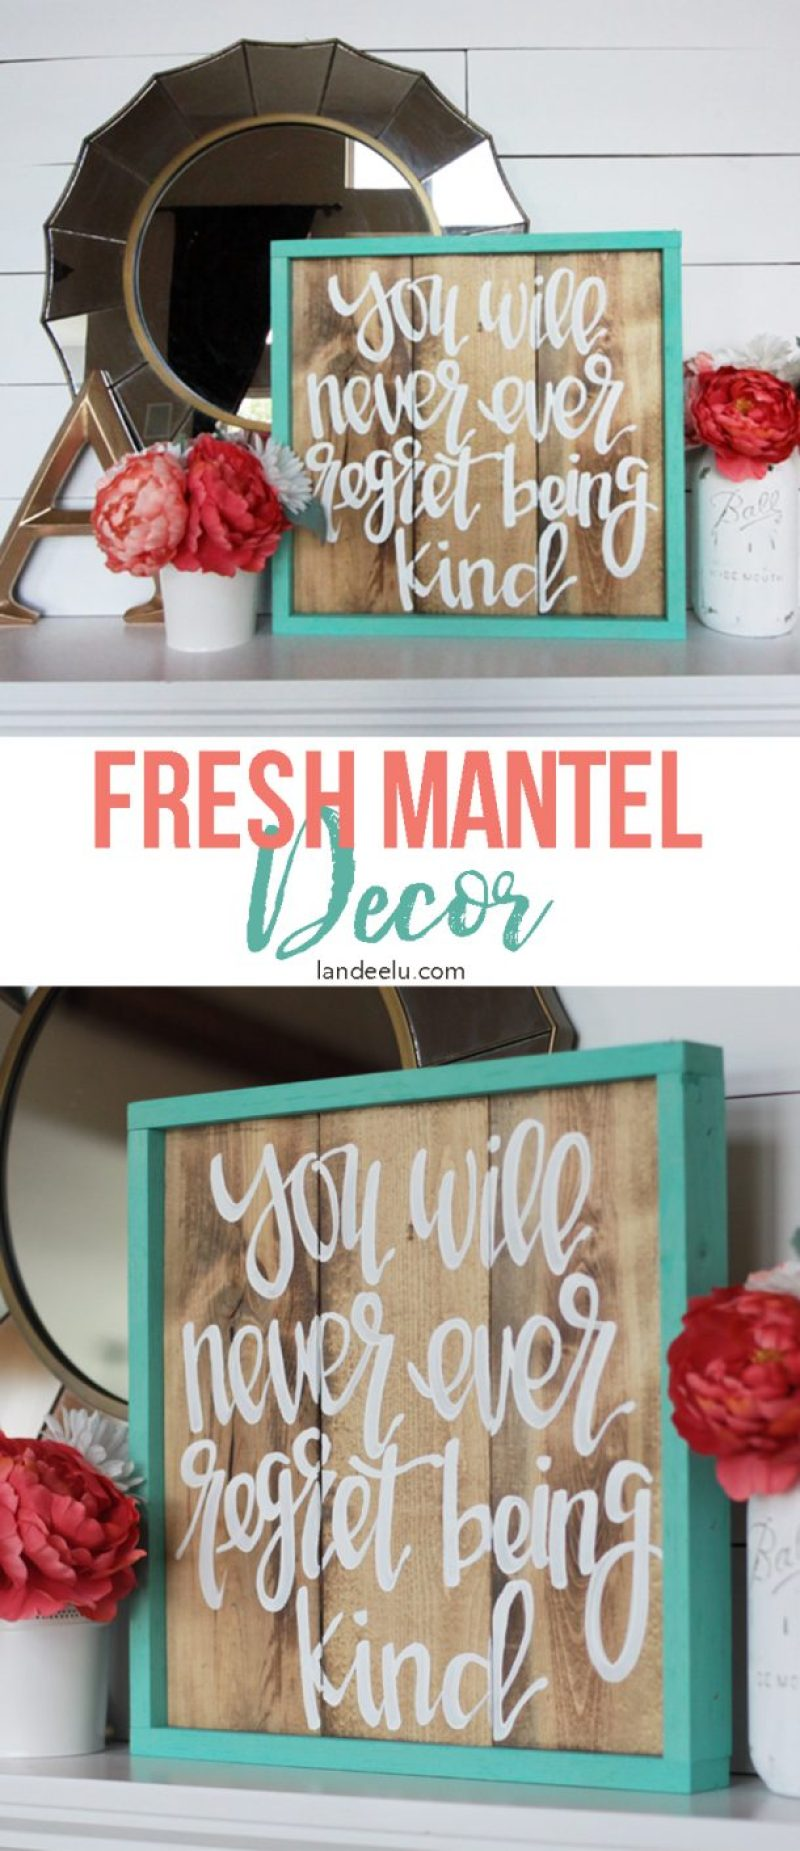 Love this hand-painted sign from Salty Bison! Cute and fresh mantel decor!